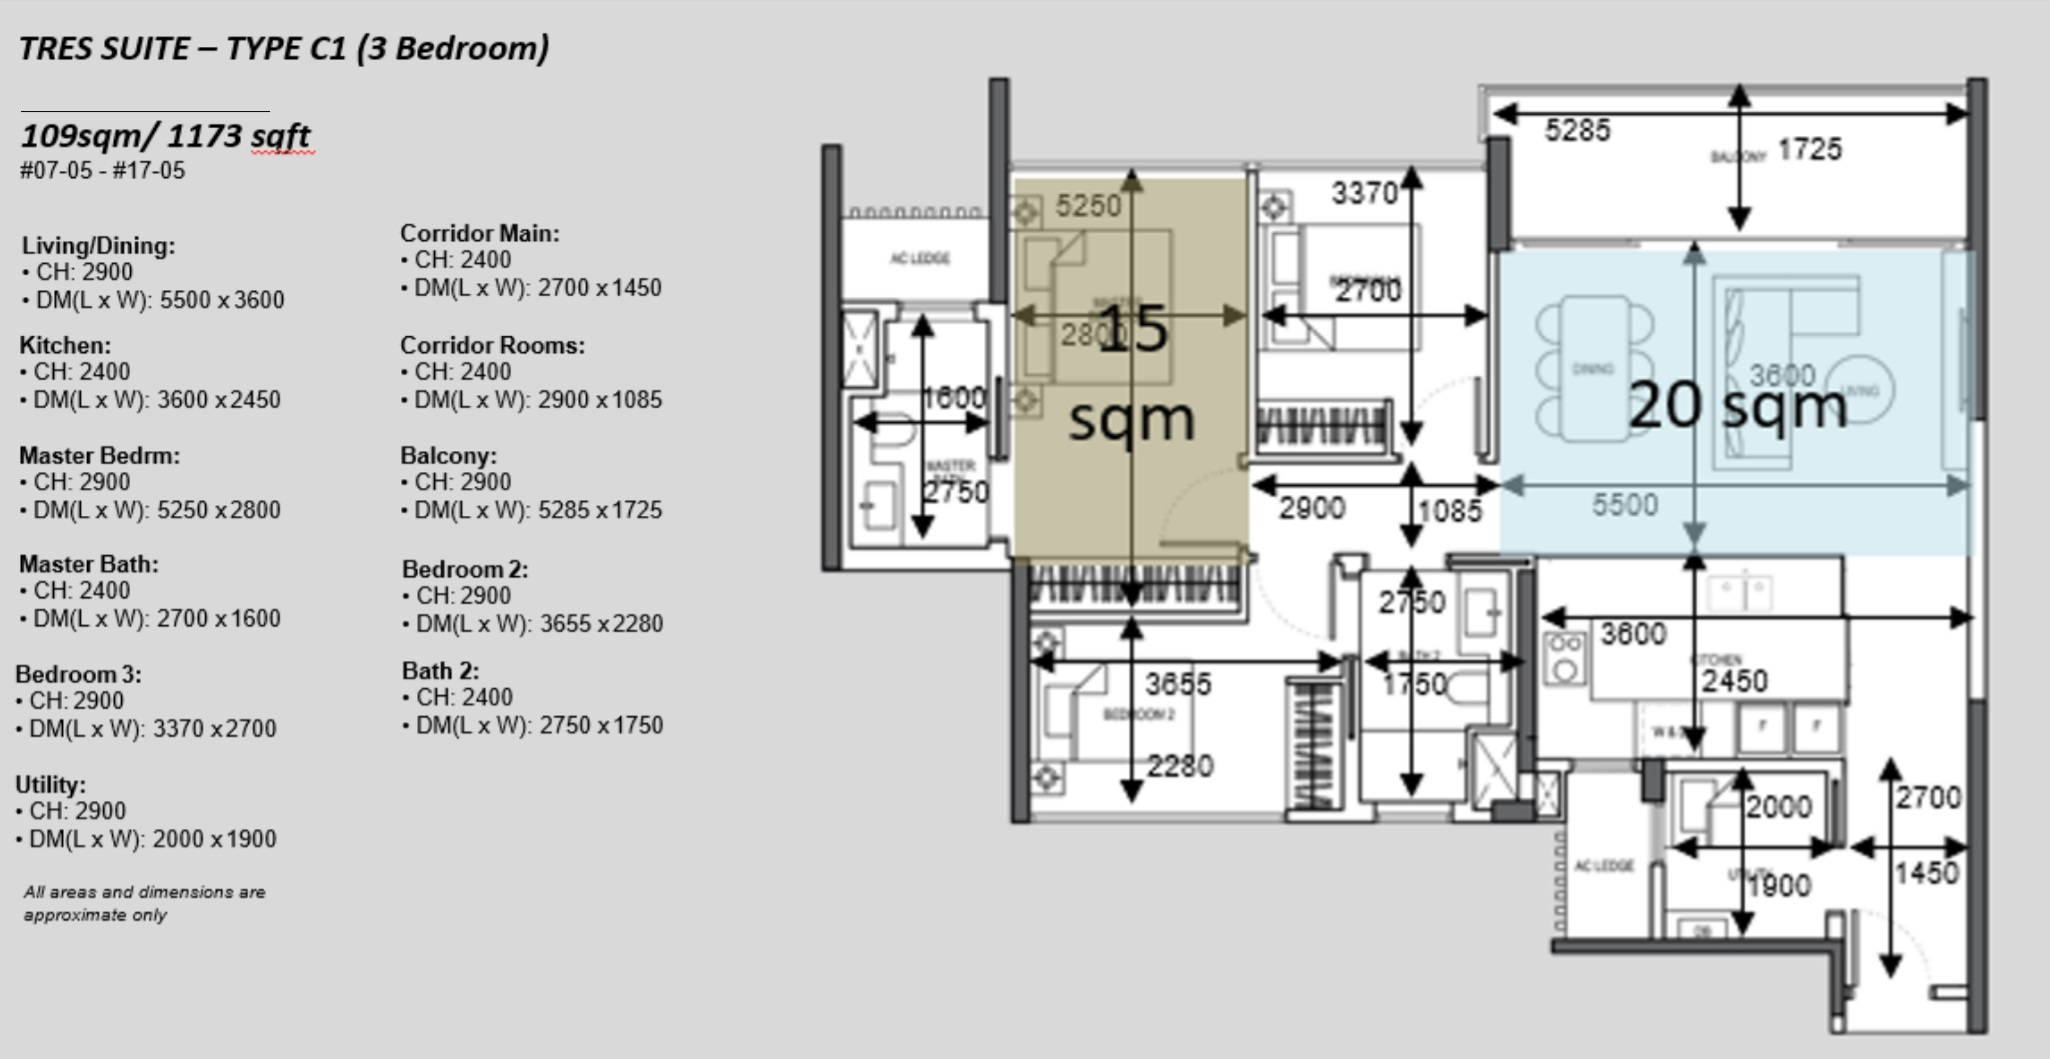 The Atelier condo floorplan 3 bedroom Type C1